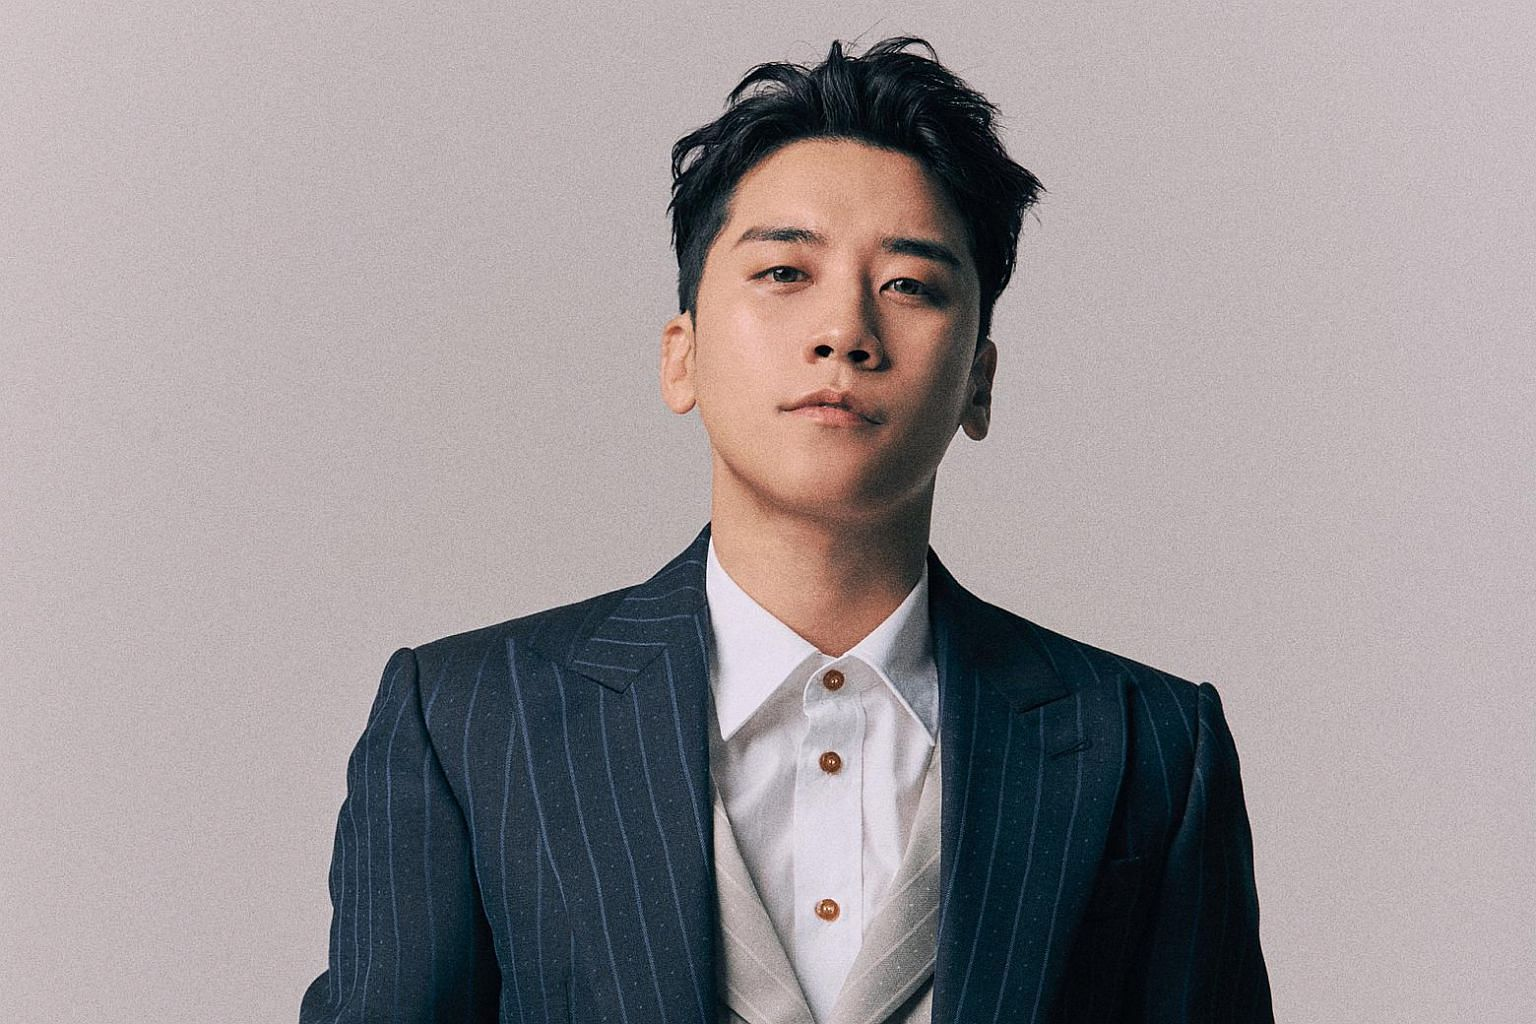 Seungri and Yoo are accused of violence